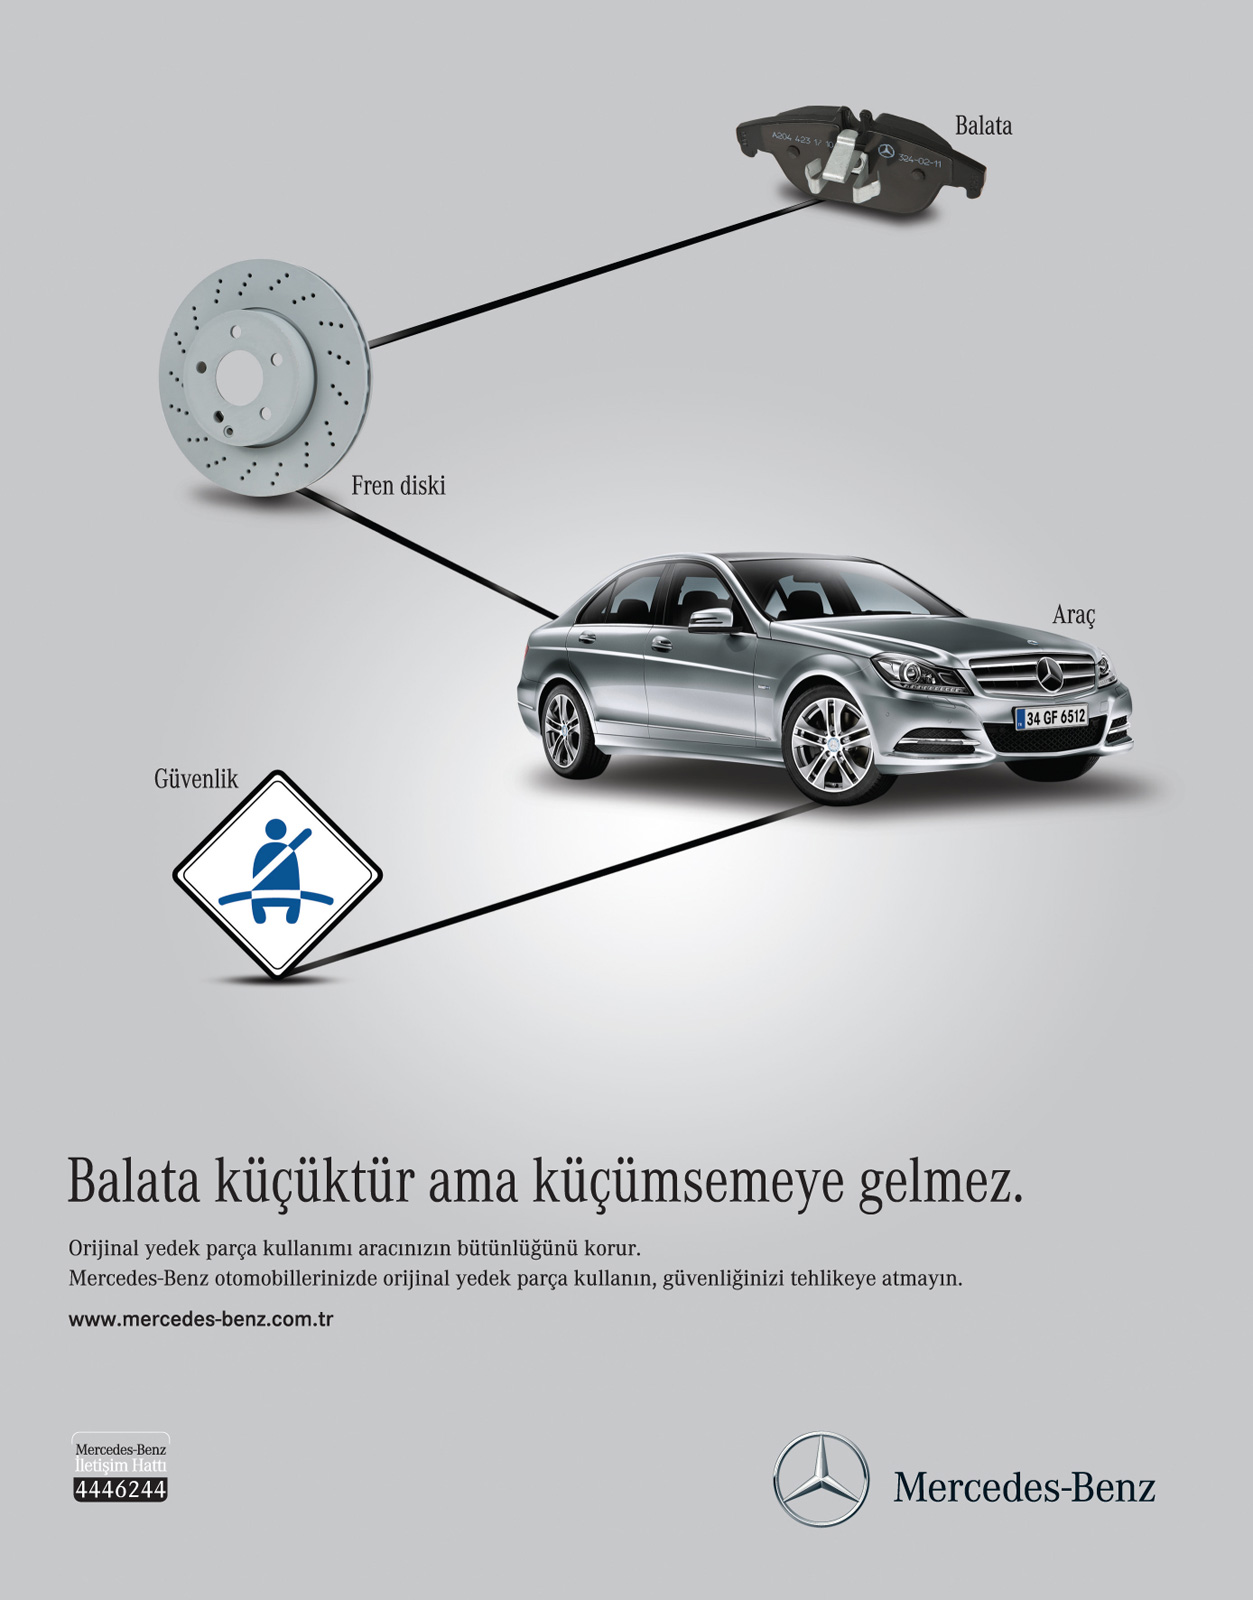 Mercedes Print Advert By Vagabond: After Sales Services, Personal ...